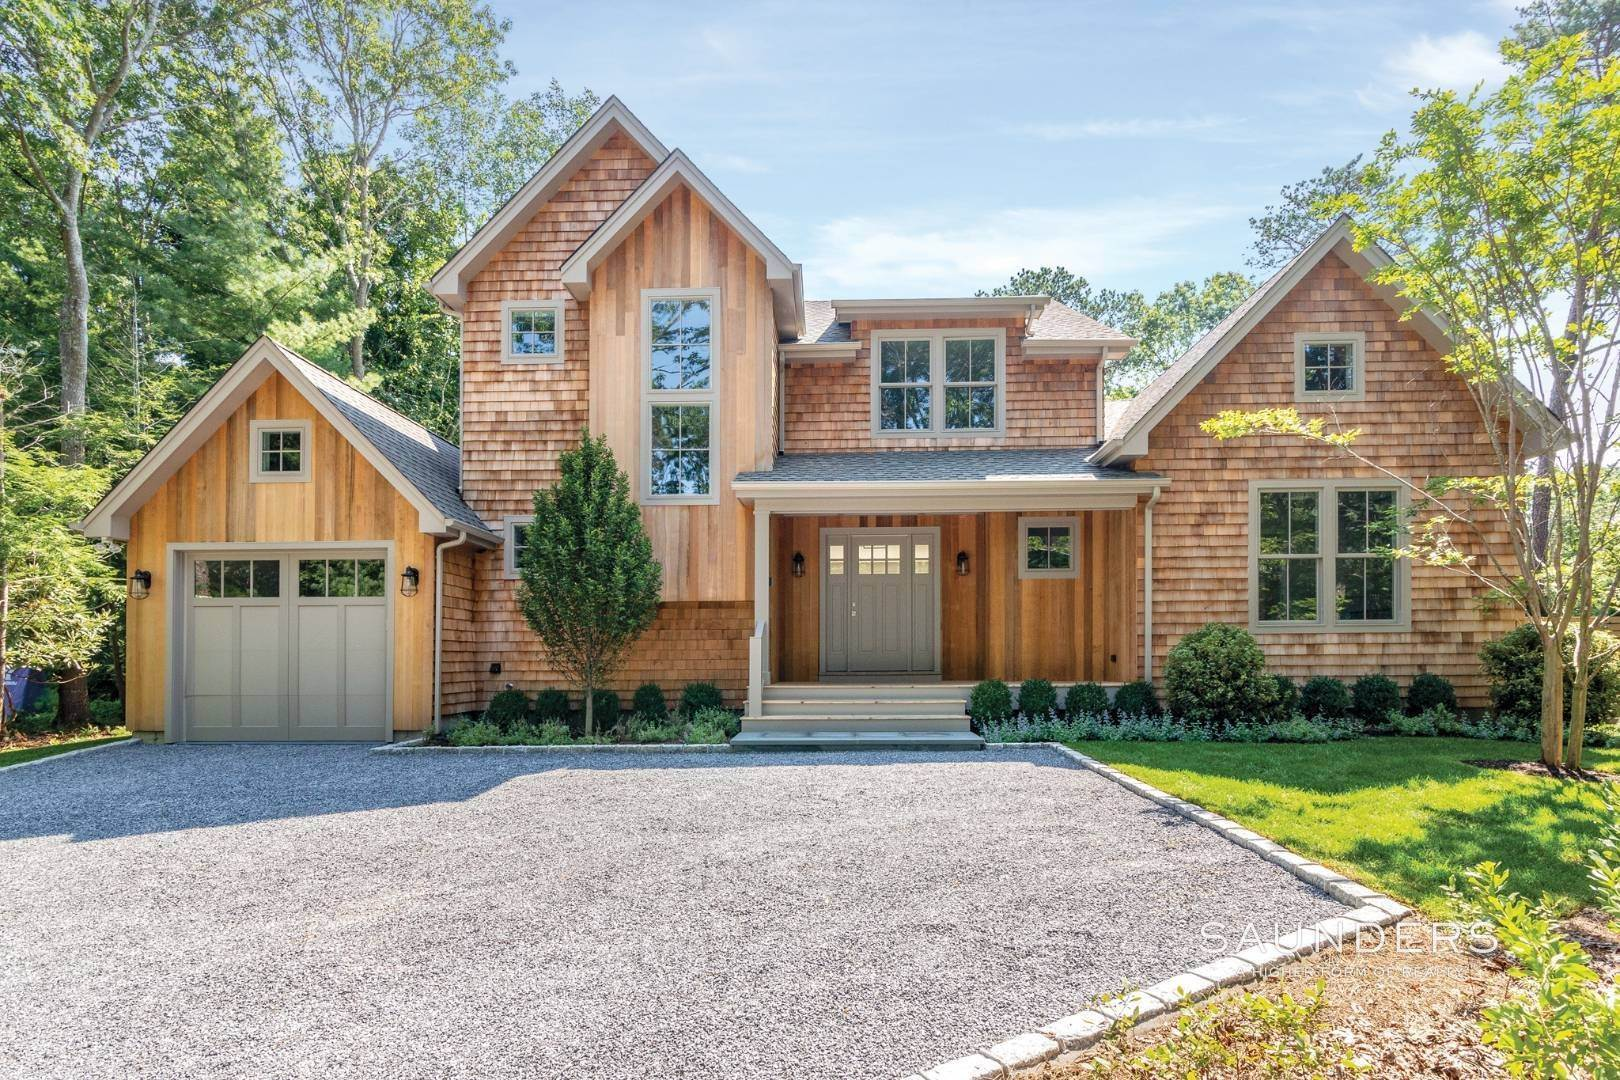 21. Single Family Homes for Sale at Brand New By Forst & Silverblank East Hampton, East Hampton Town, NY 11937